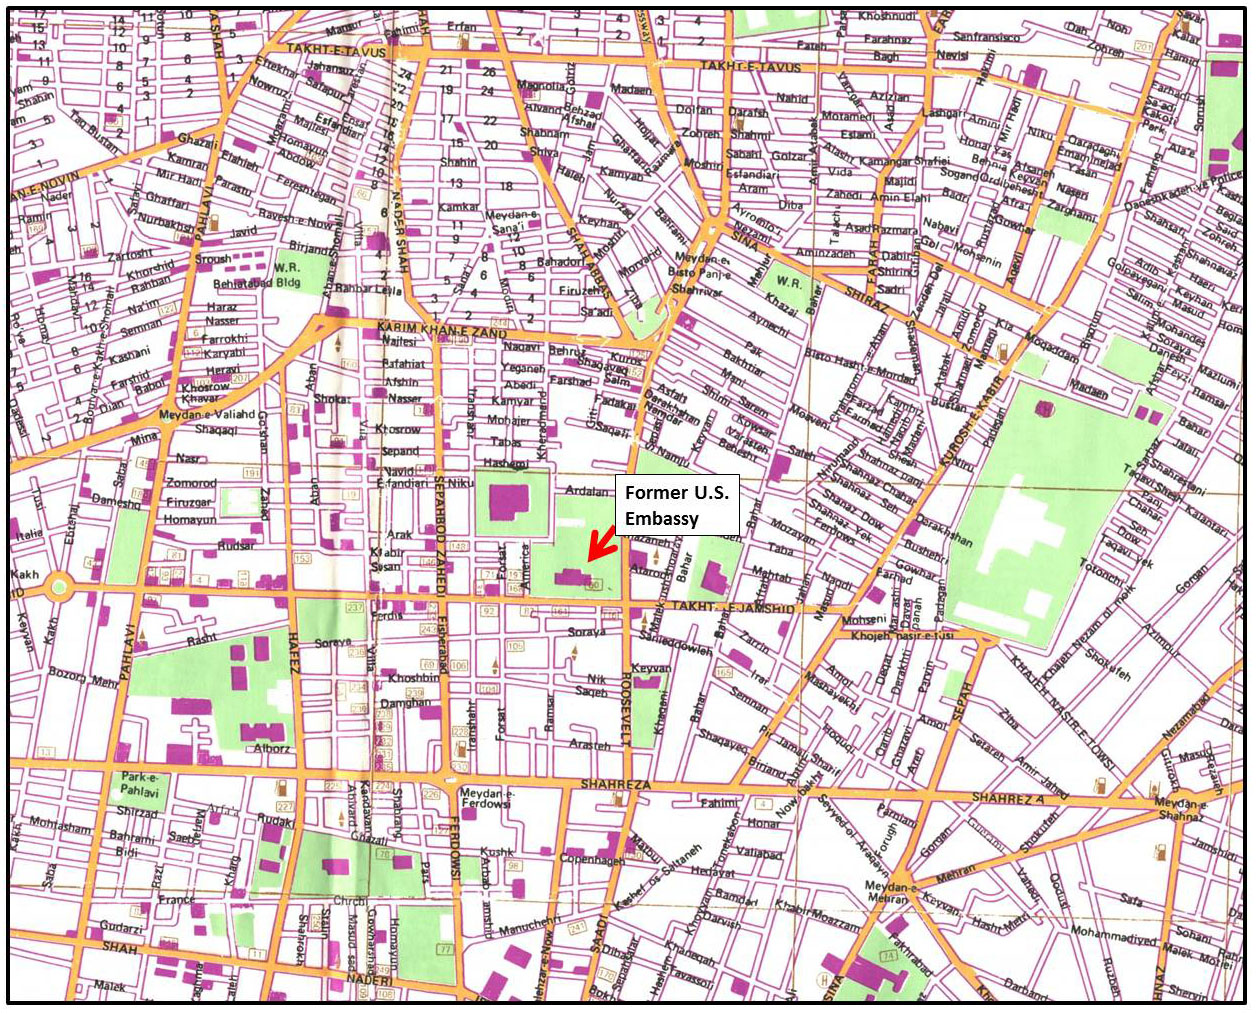 new orleans airport map with Tehran City Map on Houston Air Route Traffic Control Center also Nana together with Taca International Airways Flug 110 likewise Tehran City Map moreover Albuquerque Neighborhoods Map.